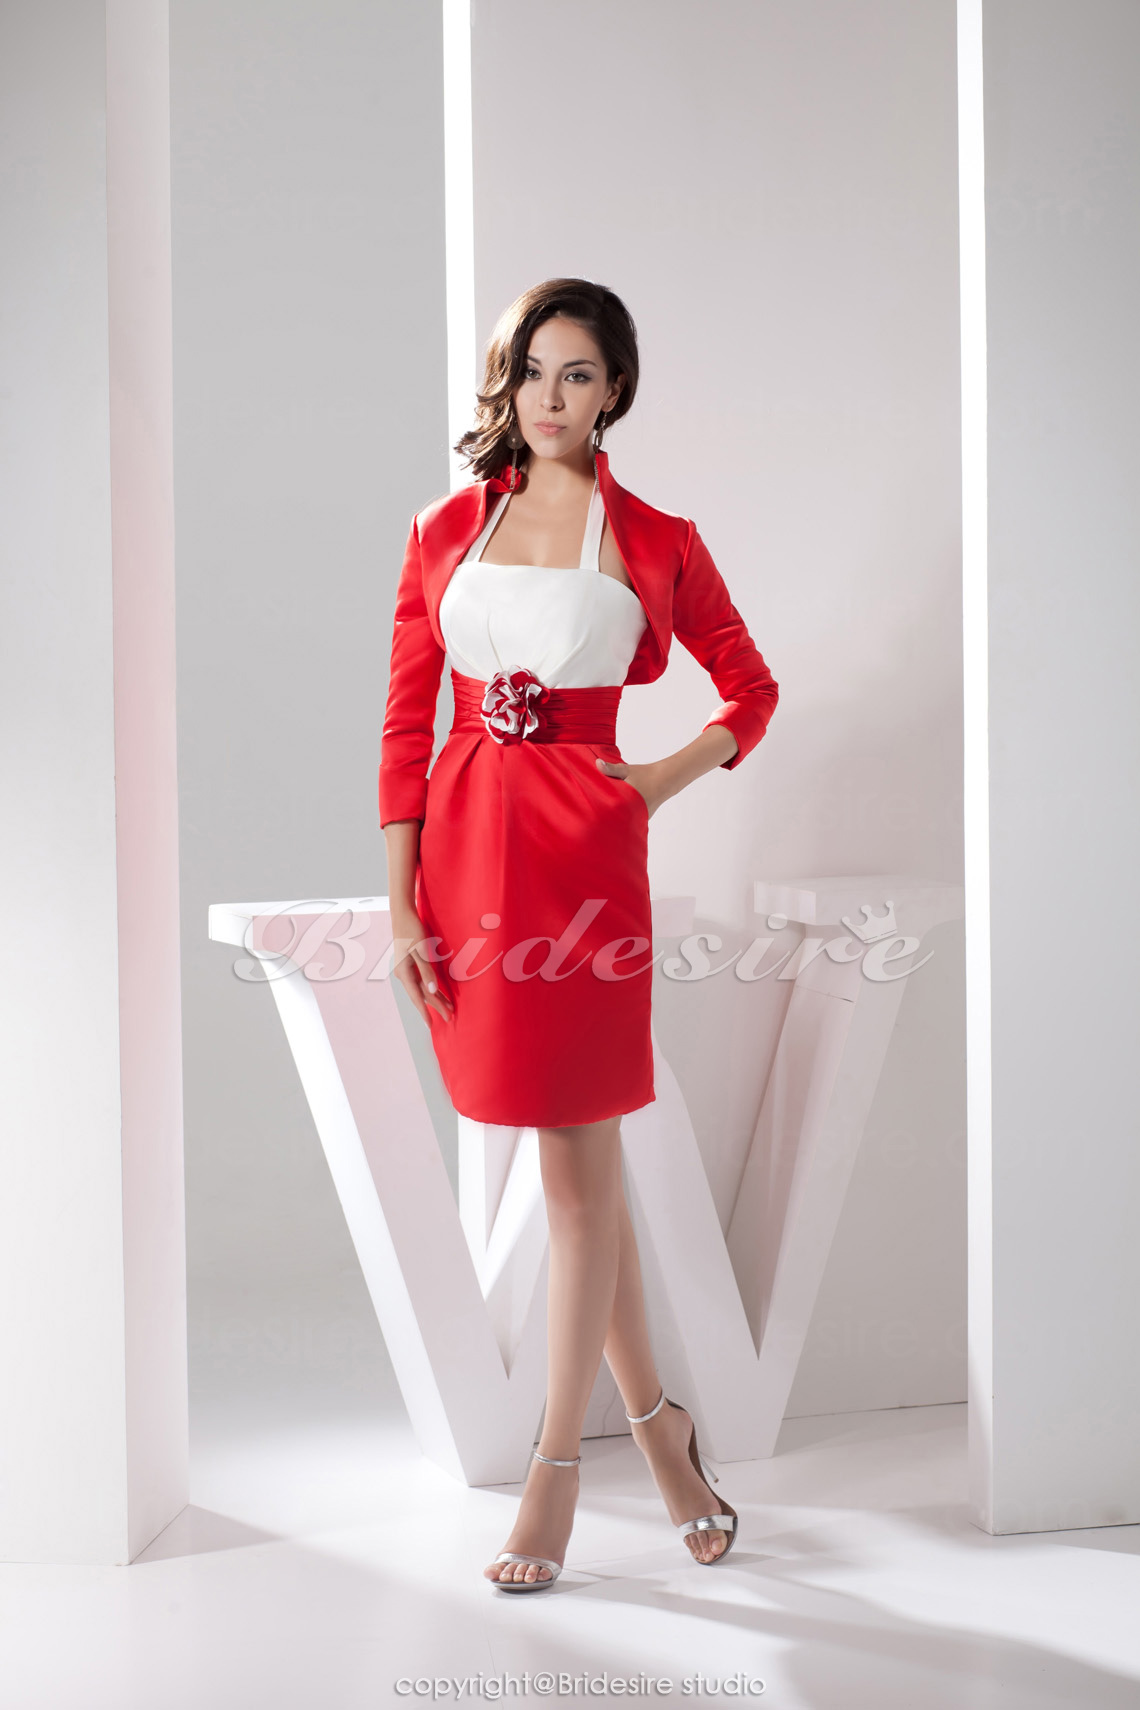 Sheath/Column Halter Short/Mini 3/4 Length Sleeve Satin Dress